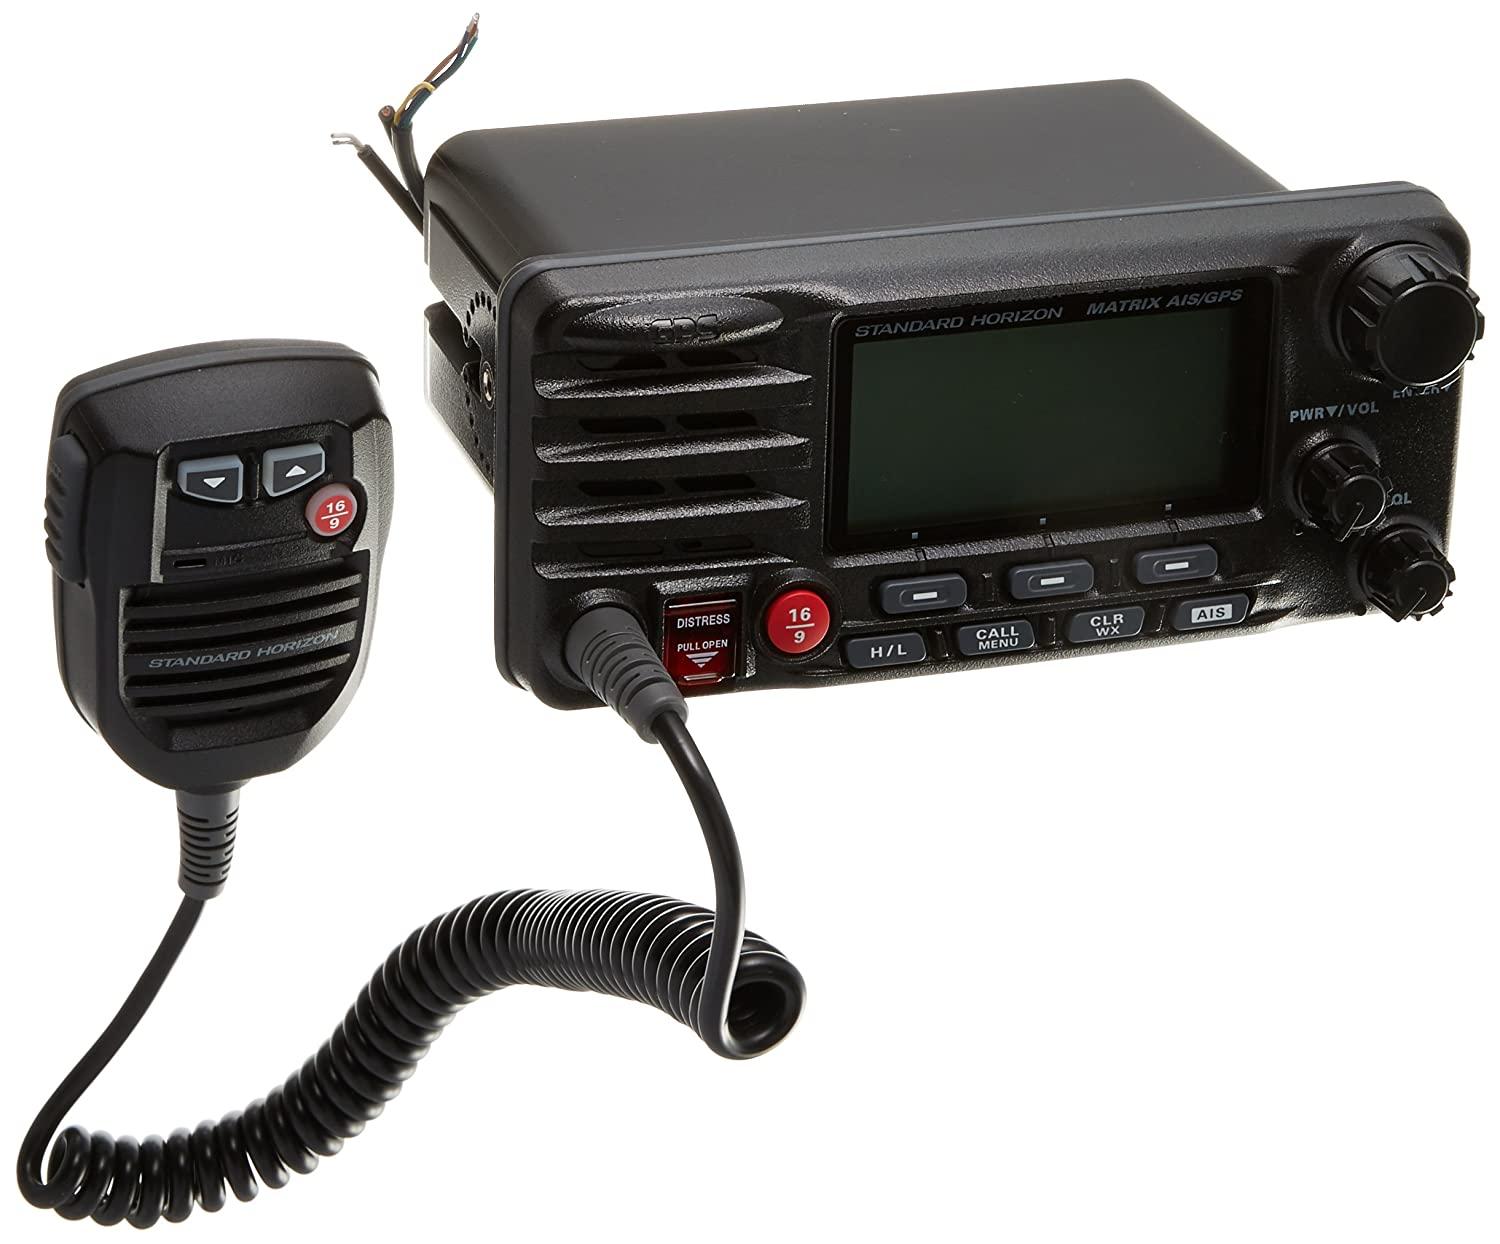 81ZVGehHG7L._SL1500_ amazon com standard horizon gx2200b standard matrix ais gps vhf  at n-0.co